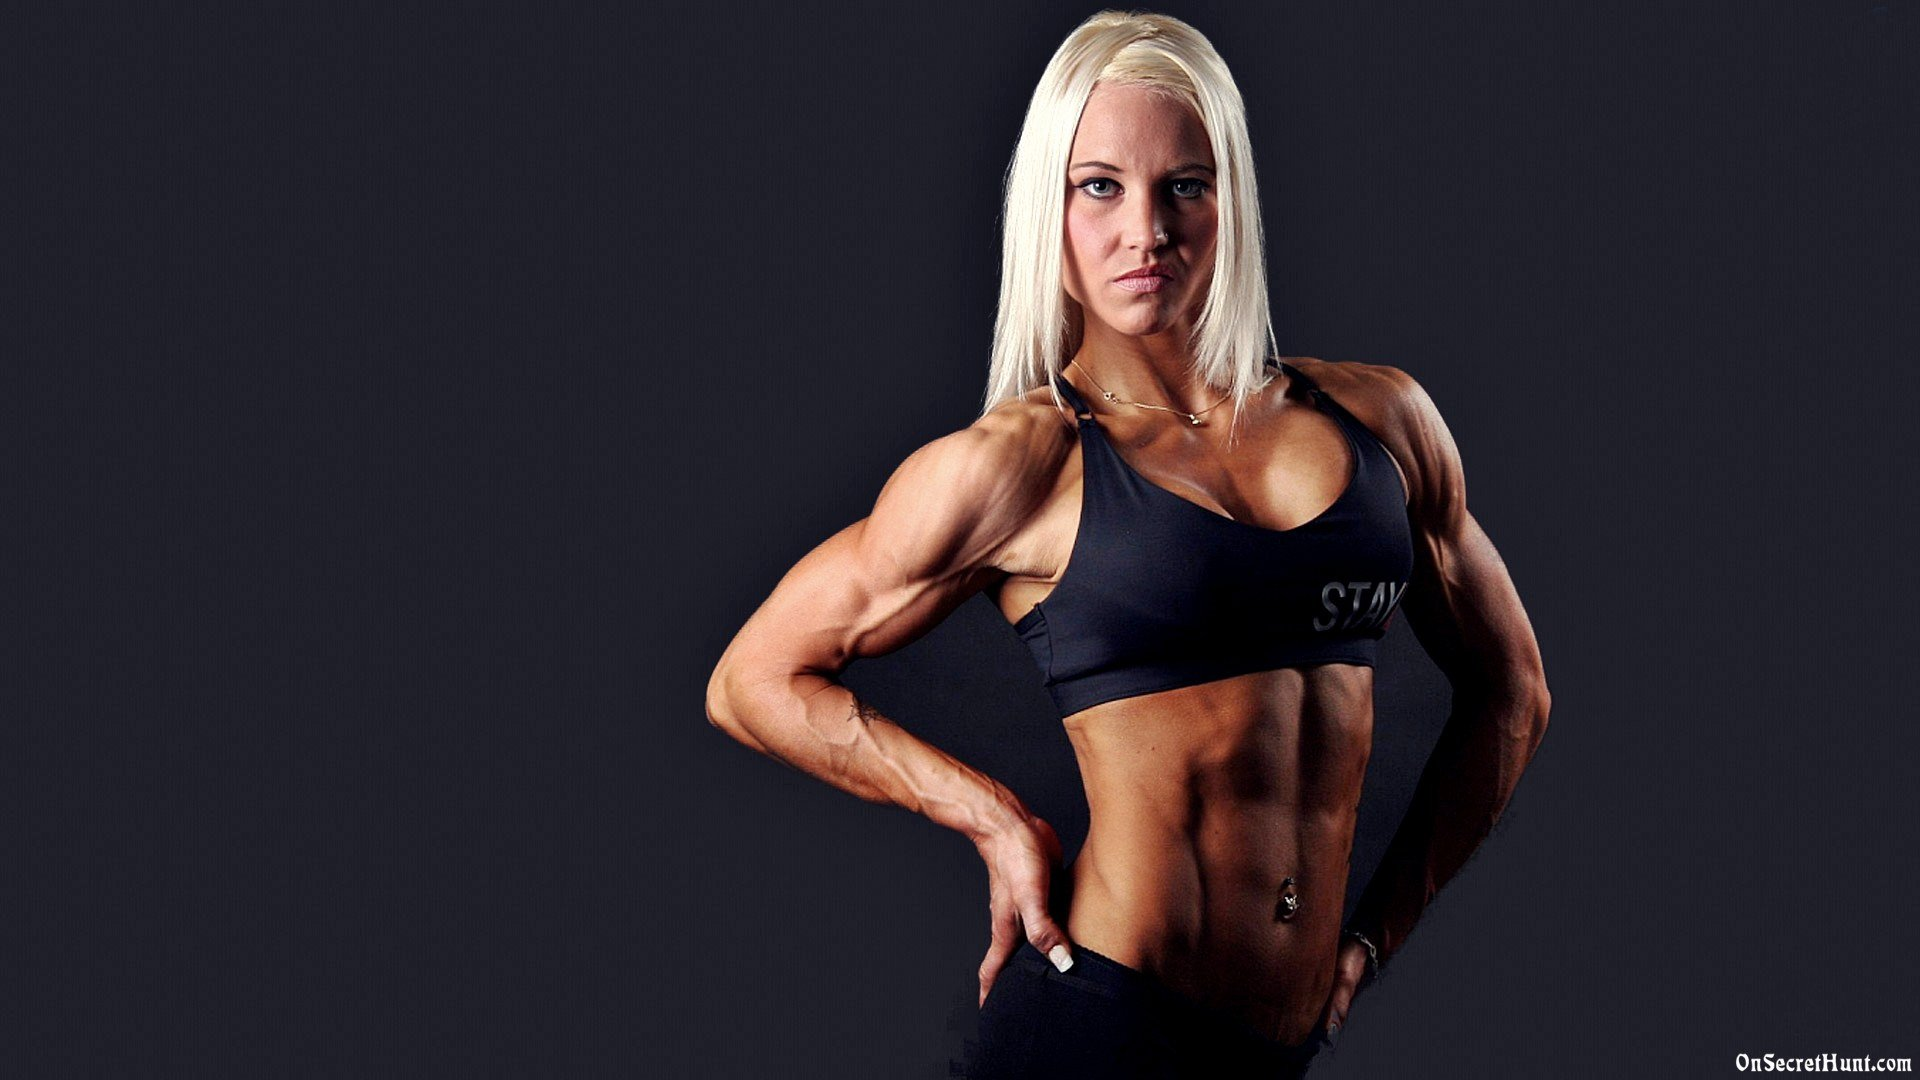 an analysis of the resistance in female bodybuilders Canadian female bodybuilders' resistance of idealized femininity the analysis demonstrated that the participants were able to negotiate the judging criteria.